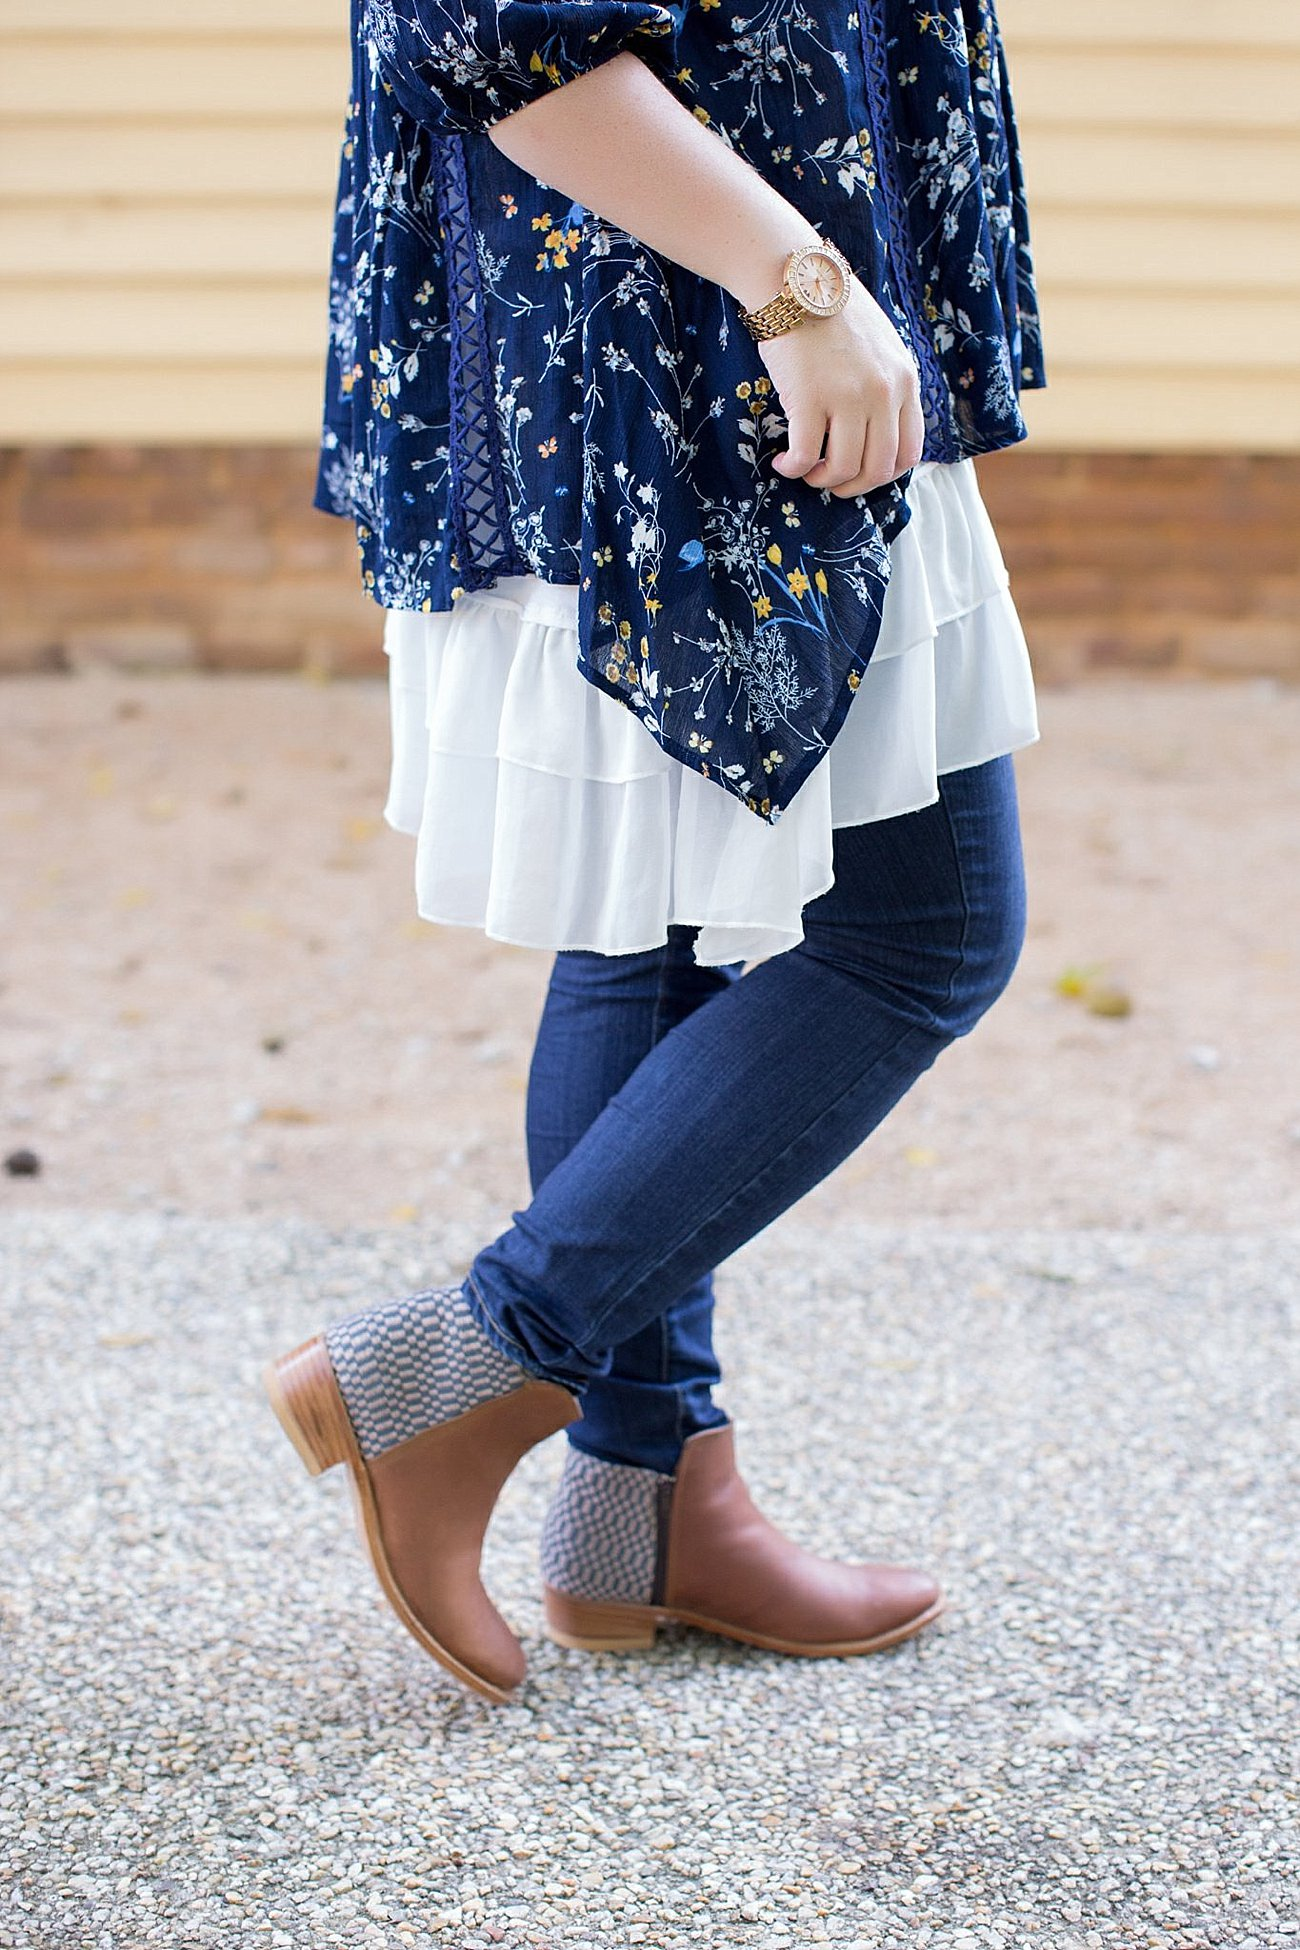 Grace & Lace peasant top and chiffon lace extender from The Flourish Market, Paige denim, Root Collective espe booties | Ethical Fashion, North Carolina Life and Style Blogger (8)